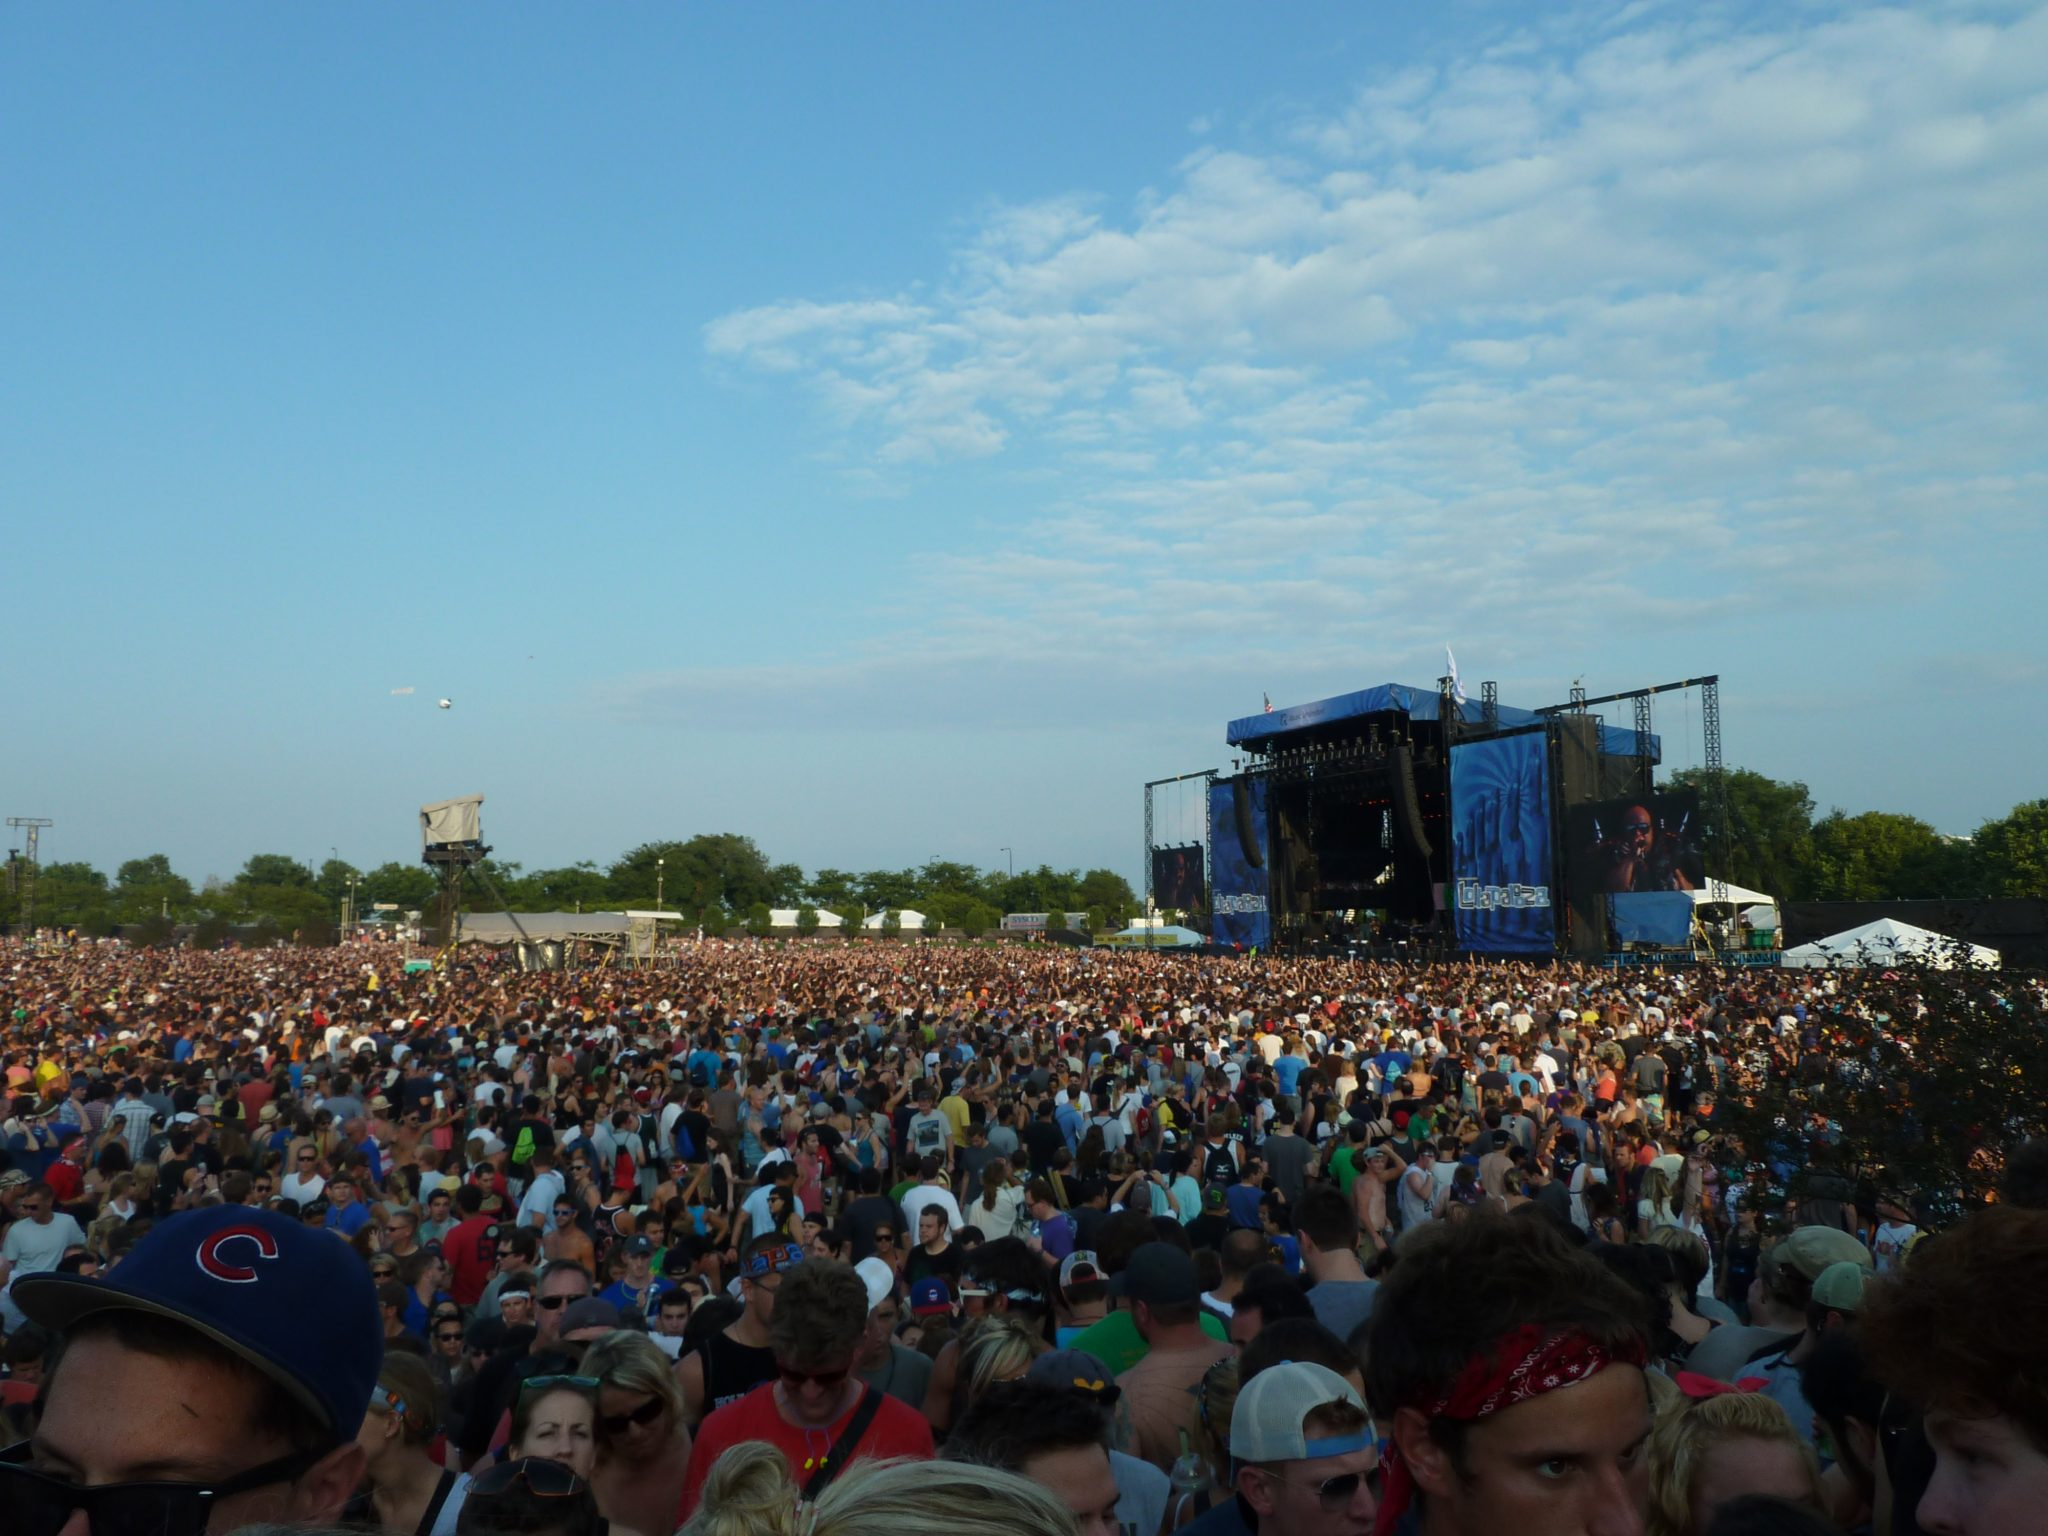 Lollapalooza 2012 Lineup (with MP3s)